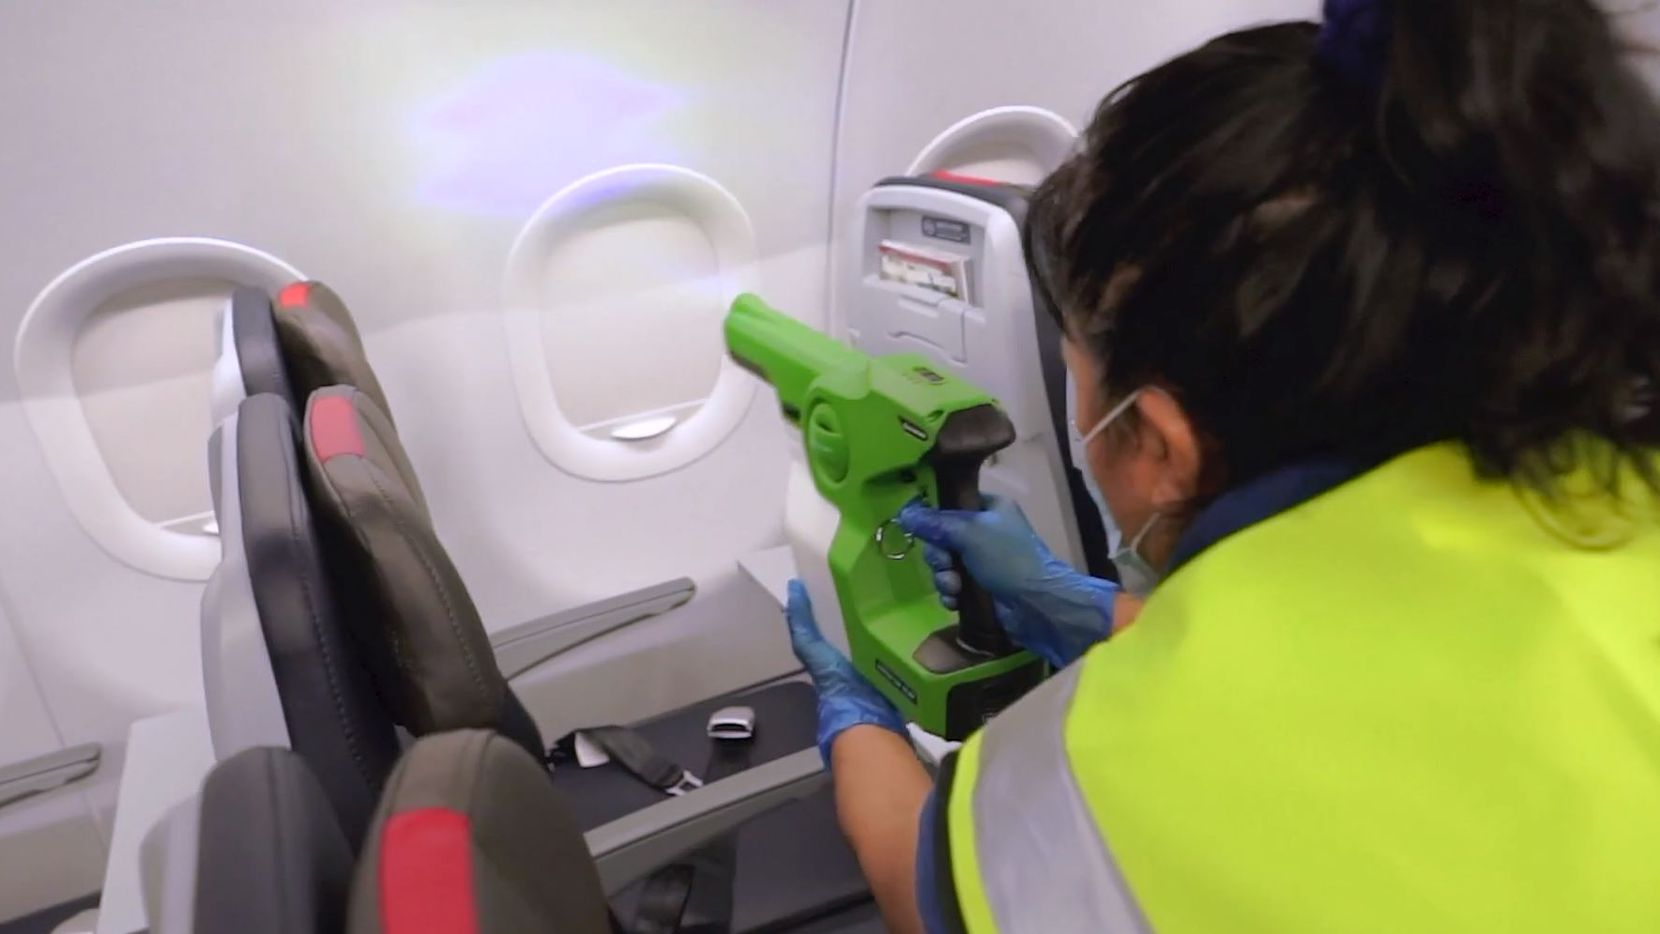 A cleaning worker uses an electrostatic sprayer to apply an antimicrobial product on an American Airlines jet. The product, called SurfaceWise2 and made by Allied BioScience, got EPA approval for inactivating the COVID-19 virus on surfaces for up to 7 days.